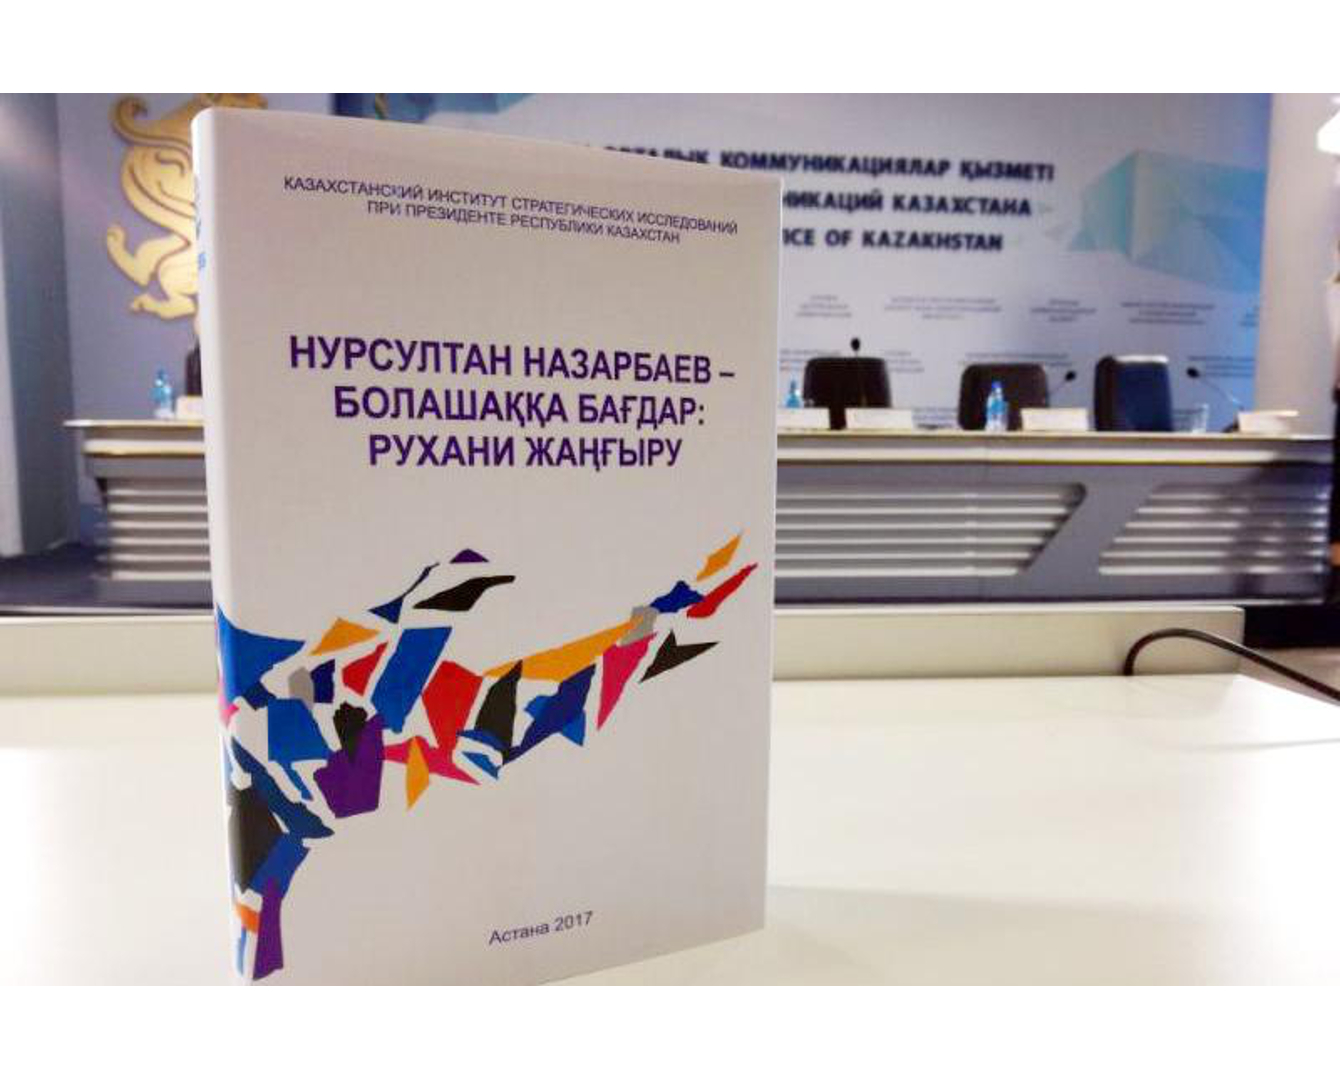 Nursultan Nazarbayev's new book presented in Astana